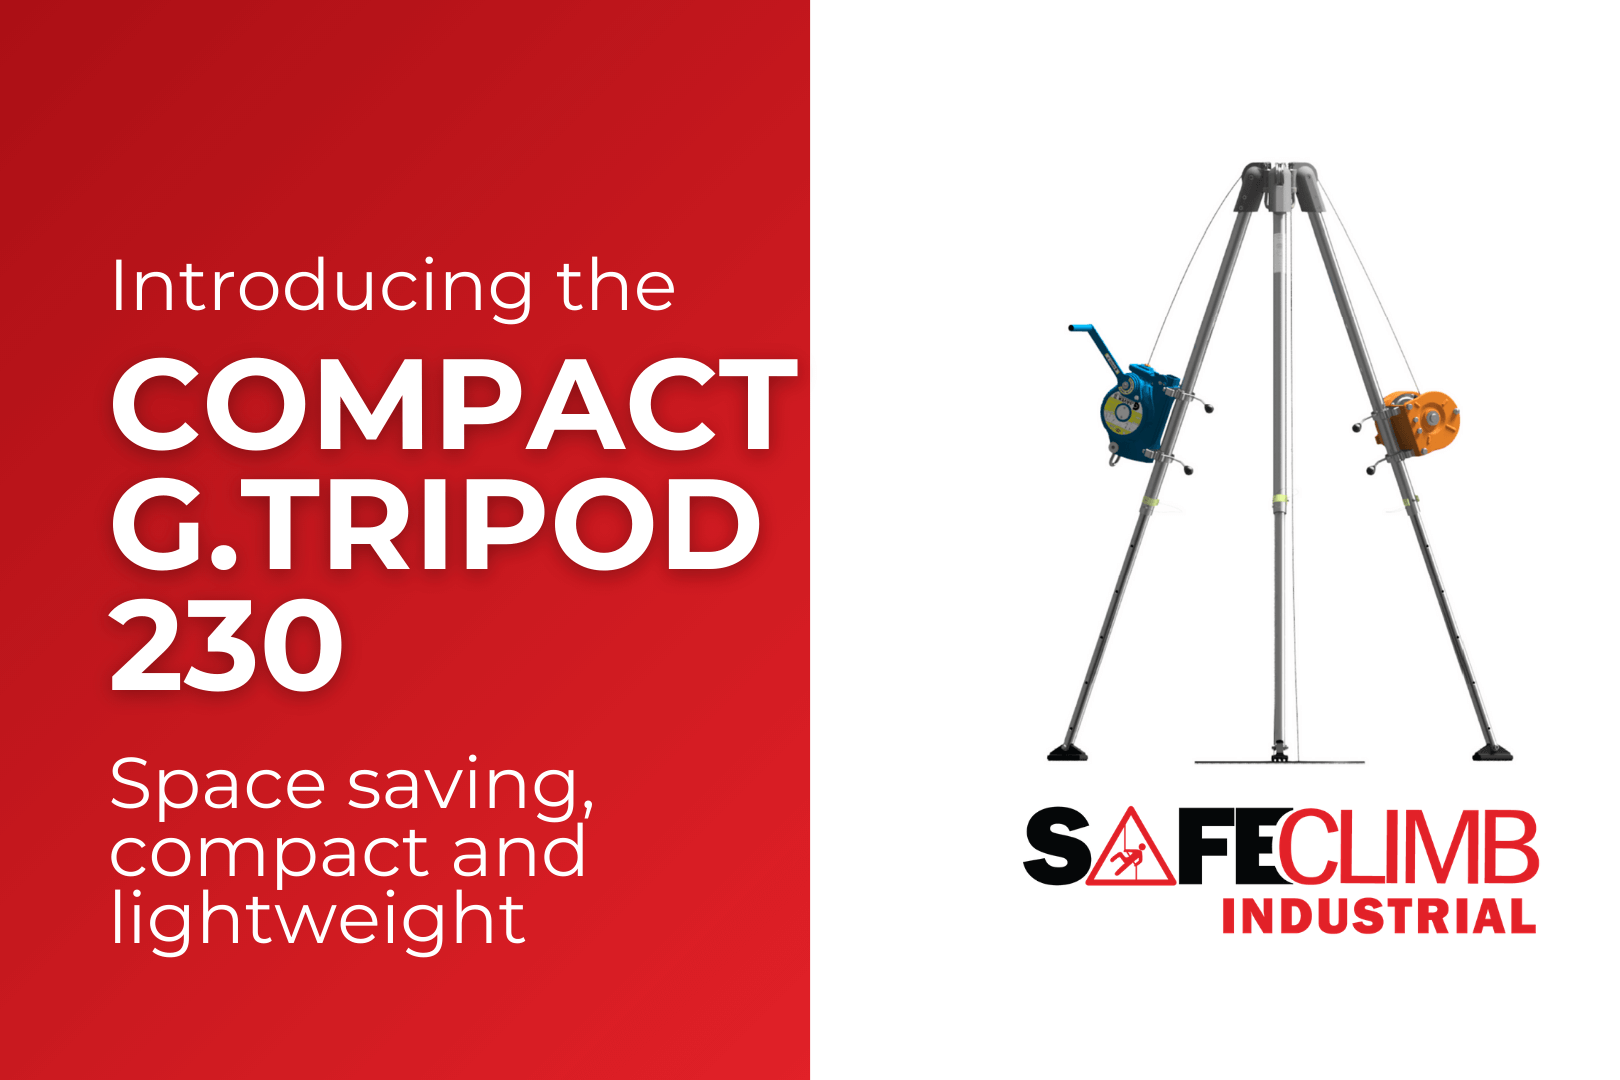 Introducing the Compact G.Tripod 230 from Globestock